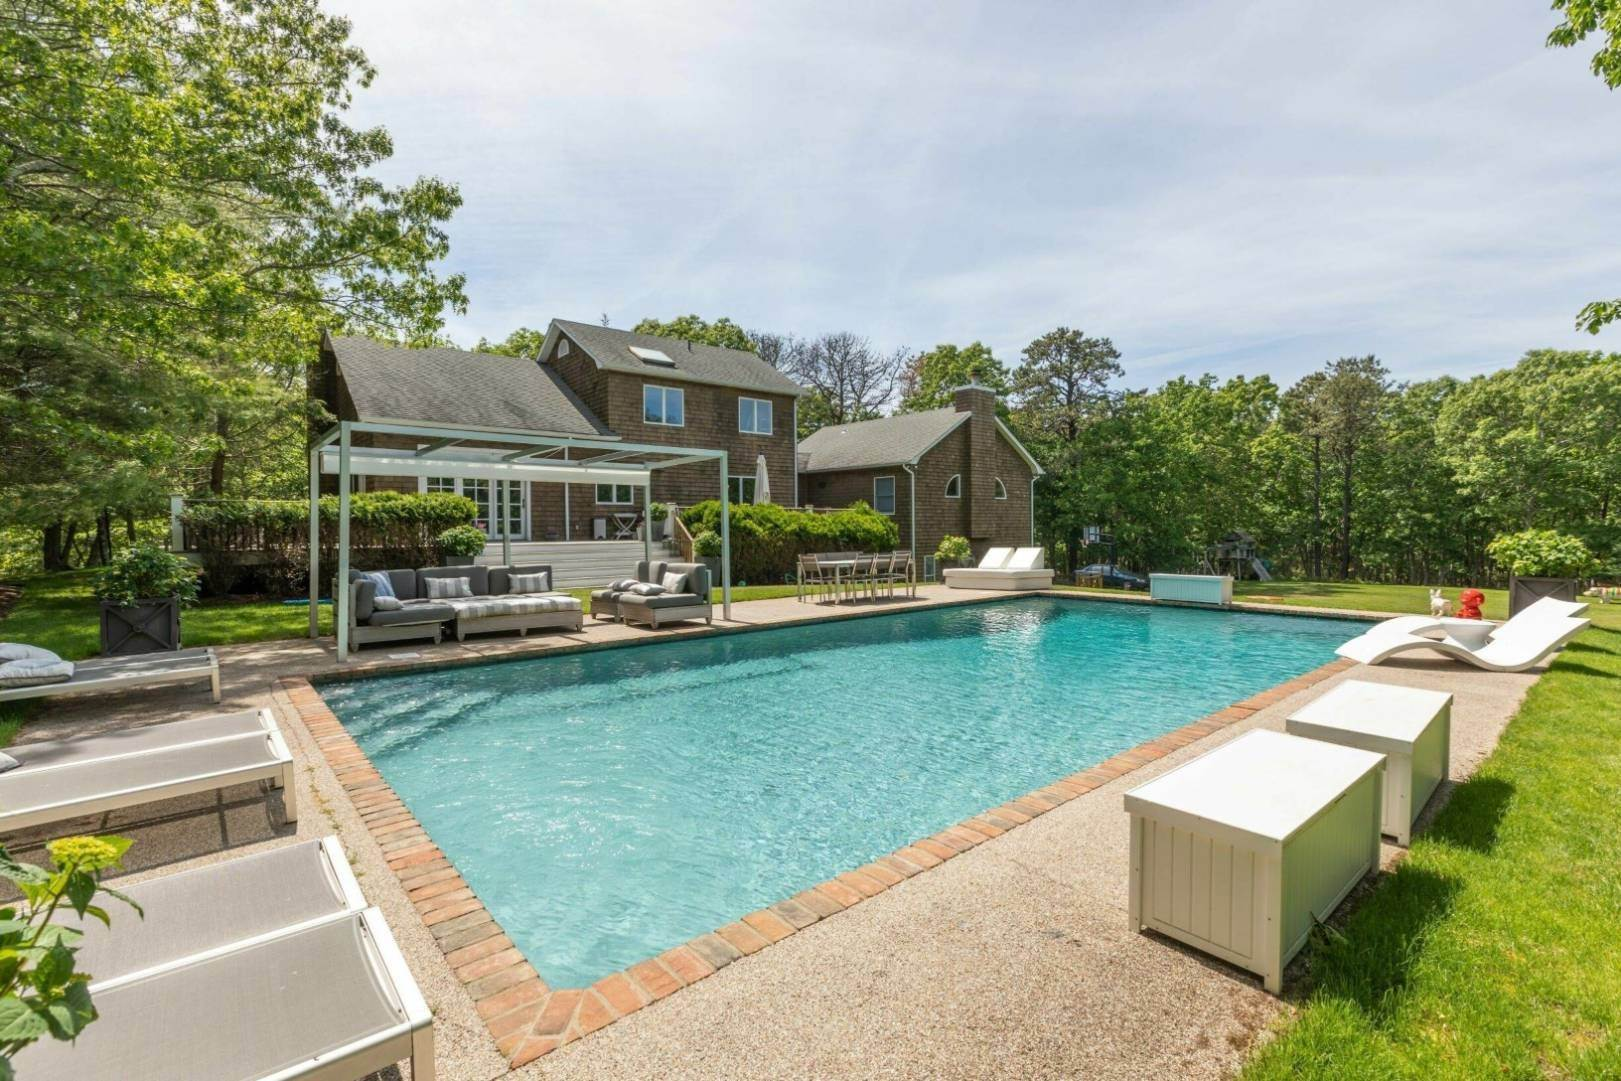 Single Family Home at Secluded And Private Oasis Bridgehampton, NY 11976